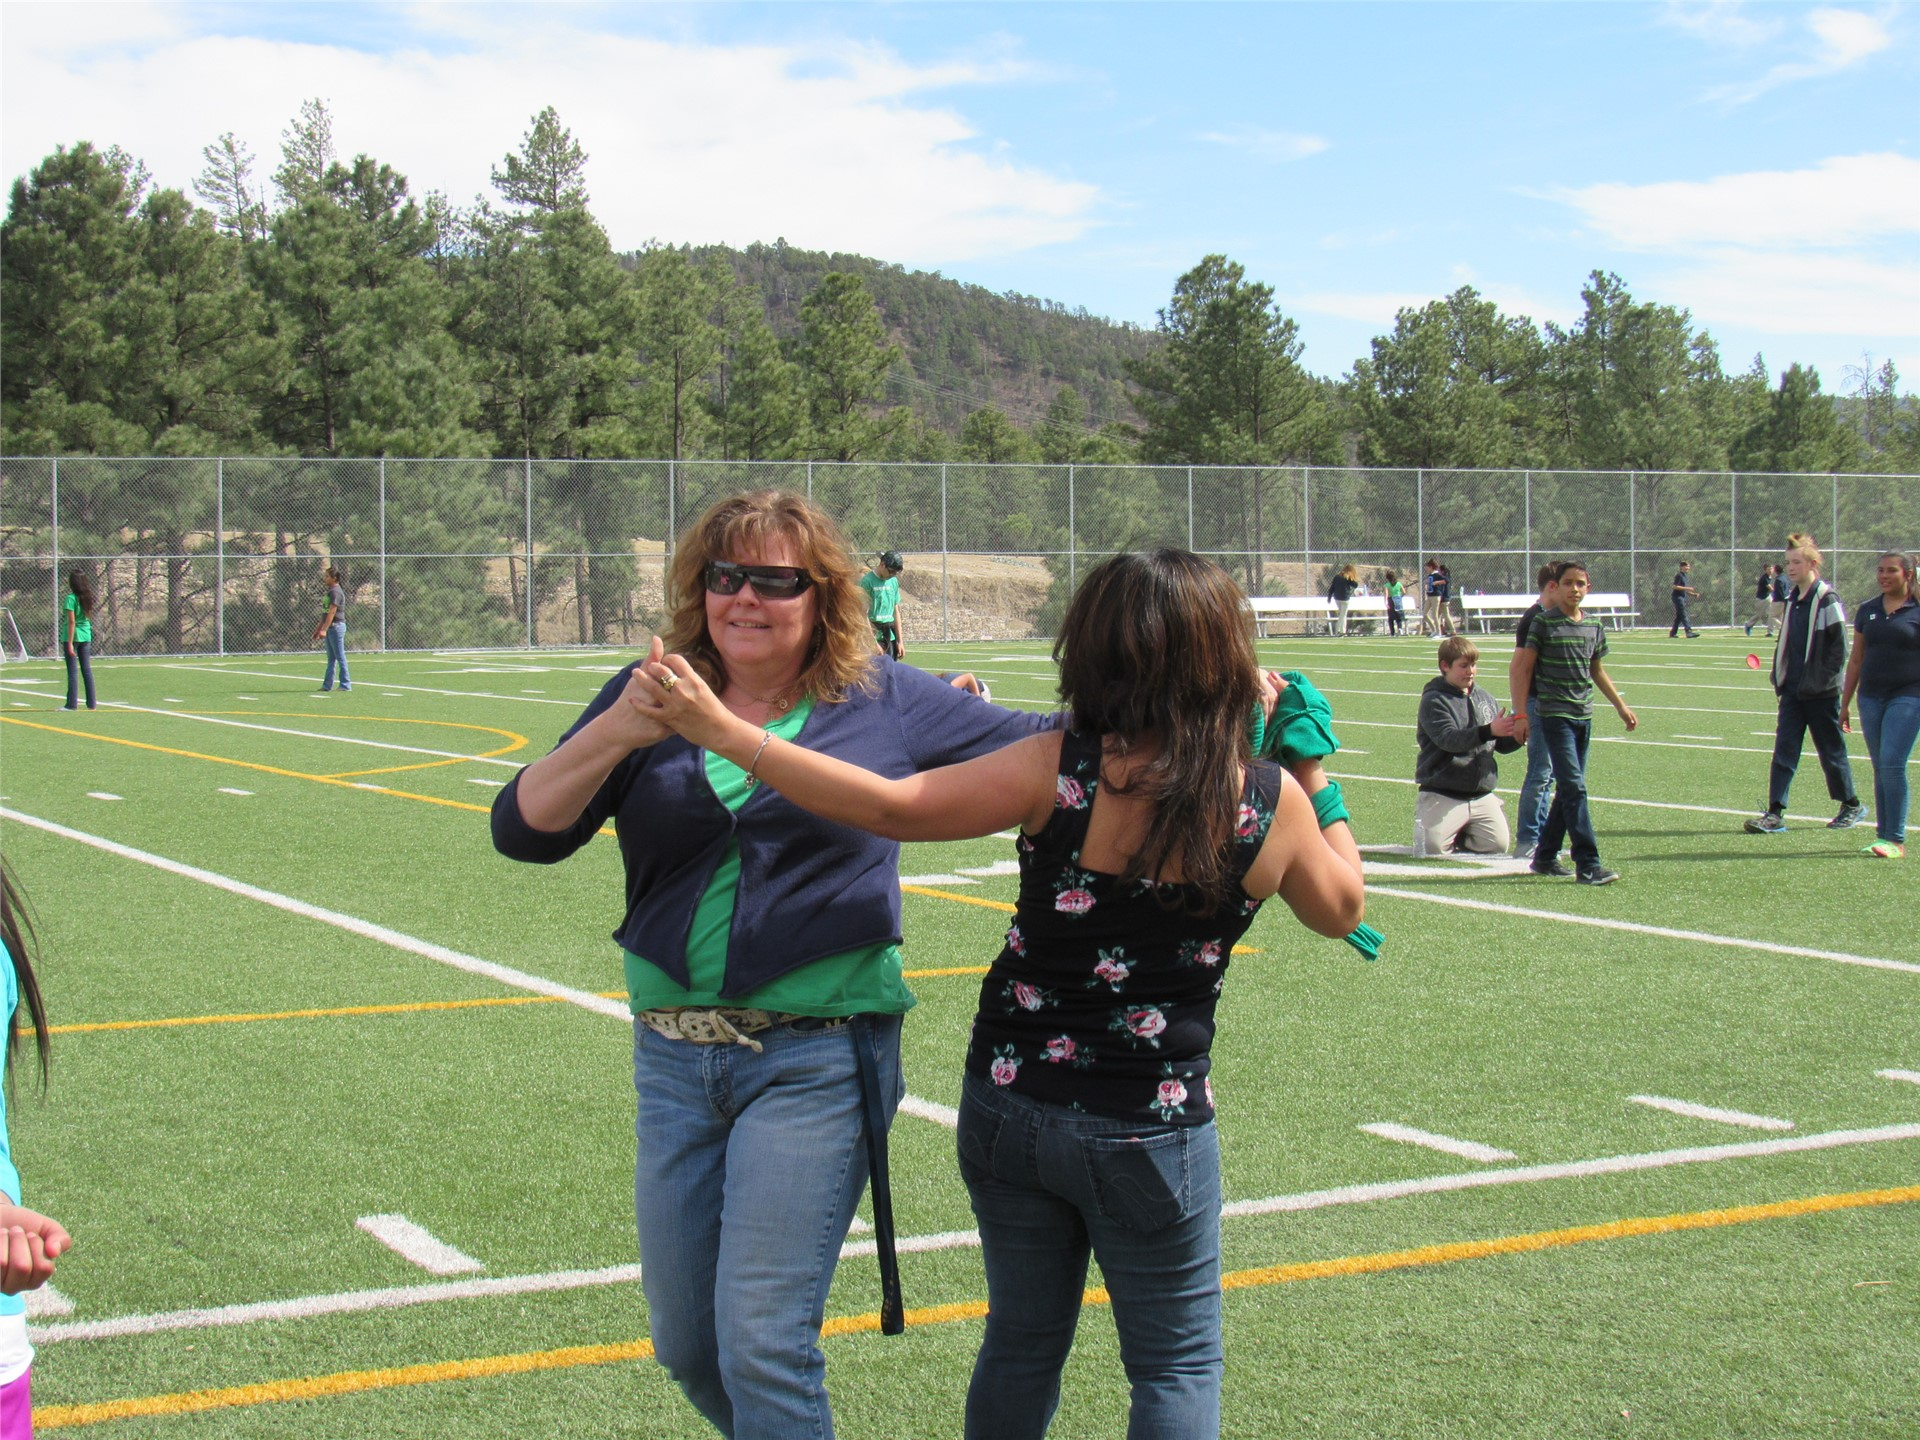 ruidoso spanish girl personals El paso isd considering school closures to regain financial stability the el paso independent school district is considering closing several.